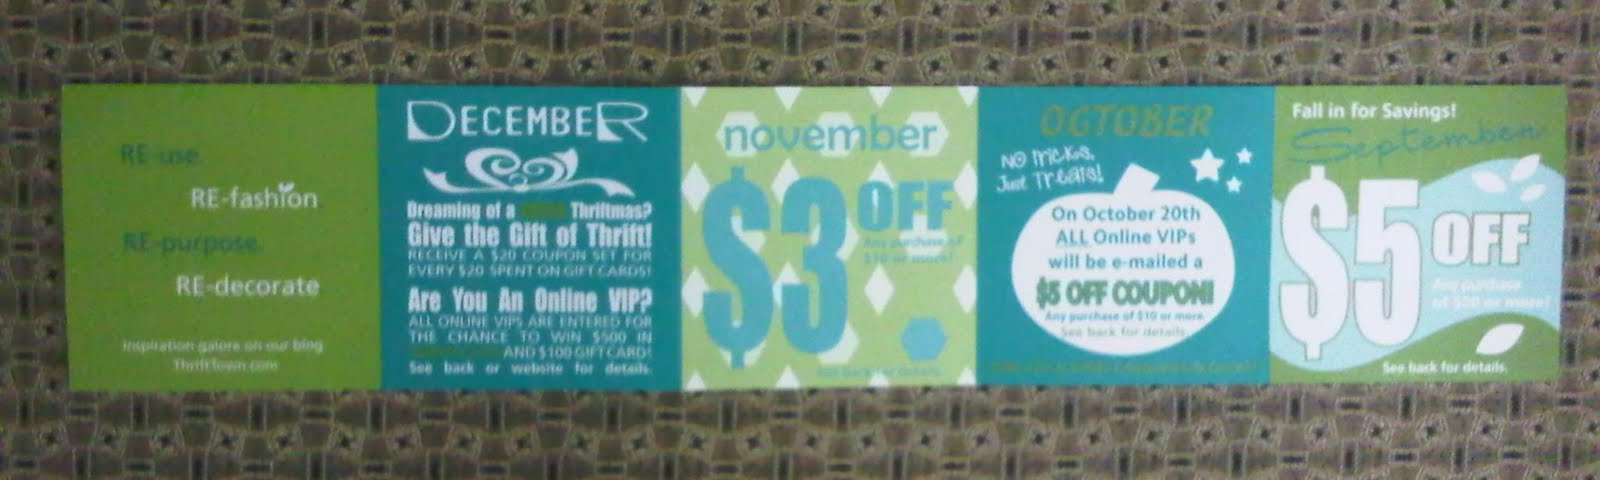 Thrift Town Coupon October 2018 Hot Deals On Bedroom Furniture